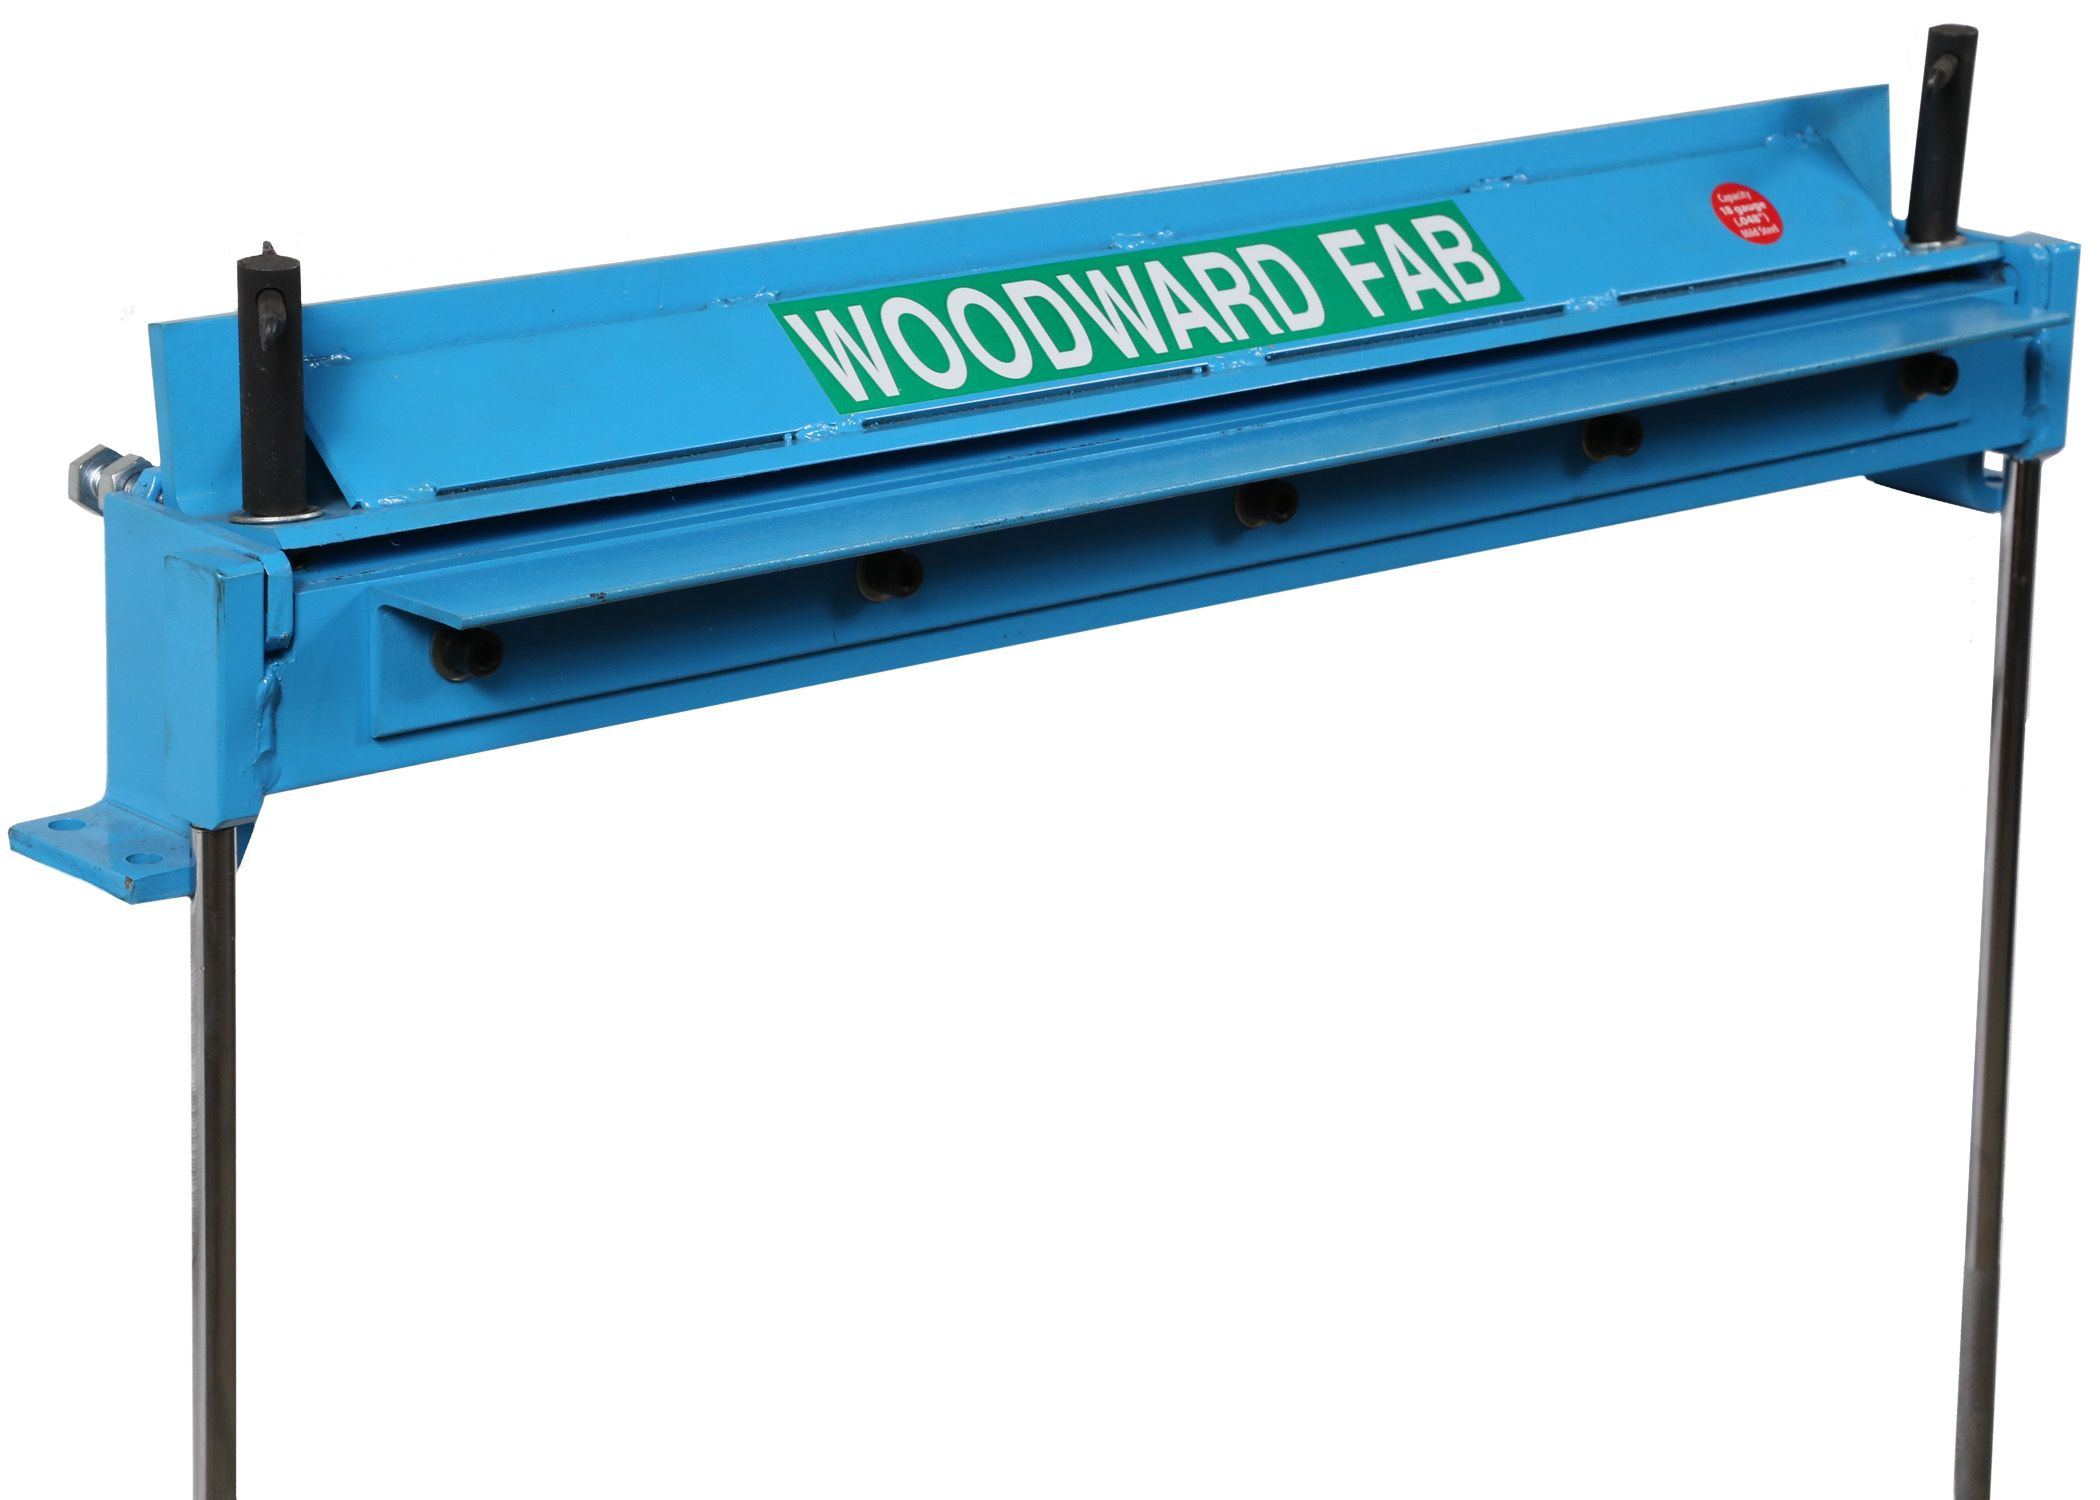 Bench Top 24 Straight Brake Wfb24 By Woodward Fab Sheet Metal Brake Metal Bending Tools Metal Bending